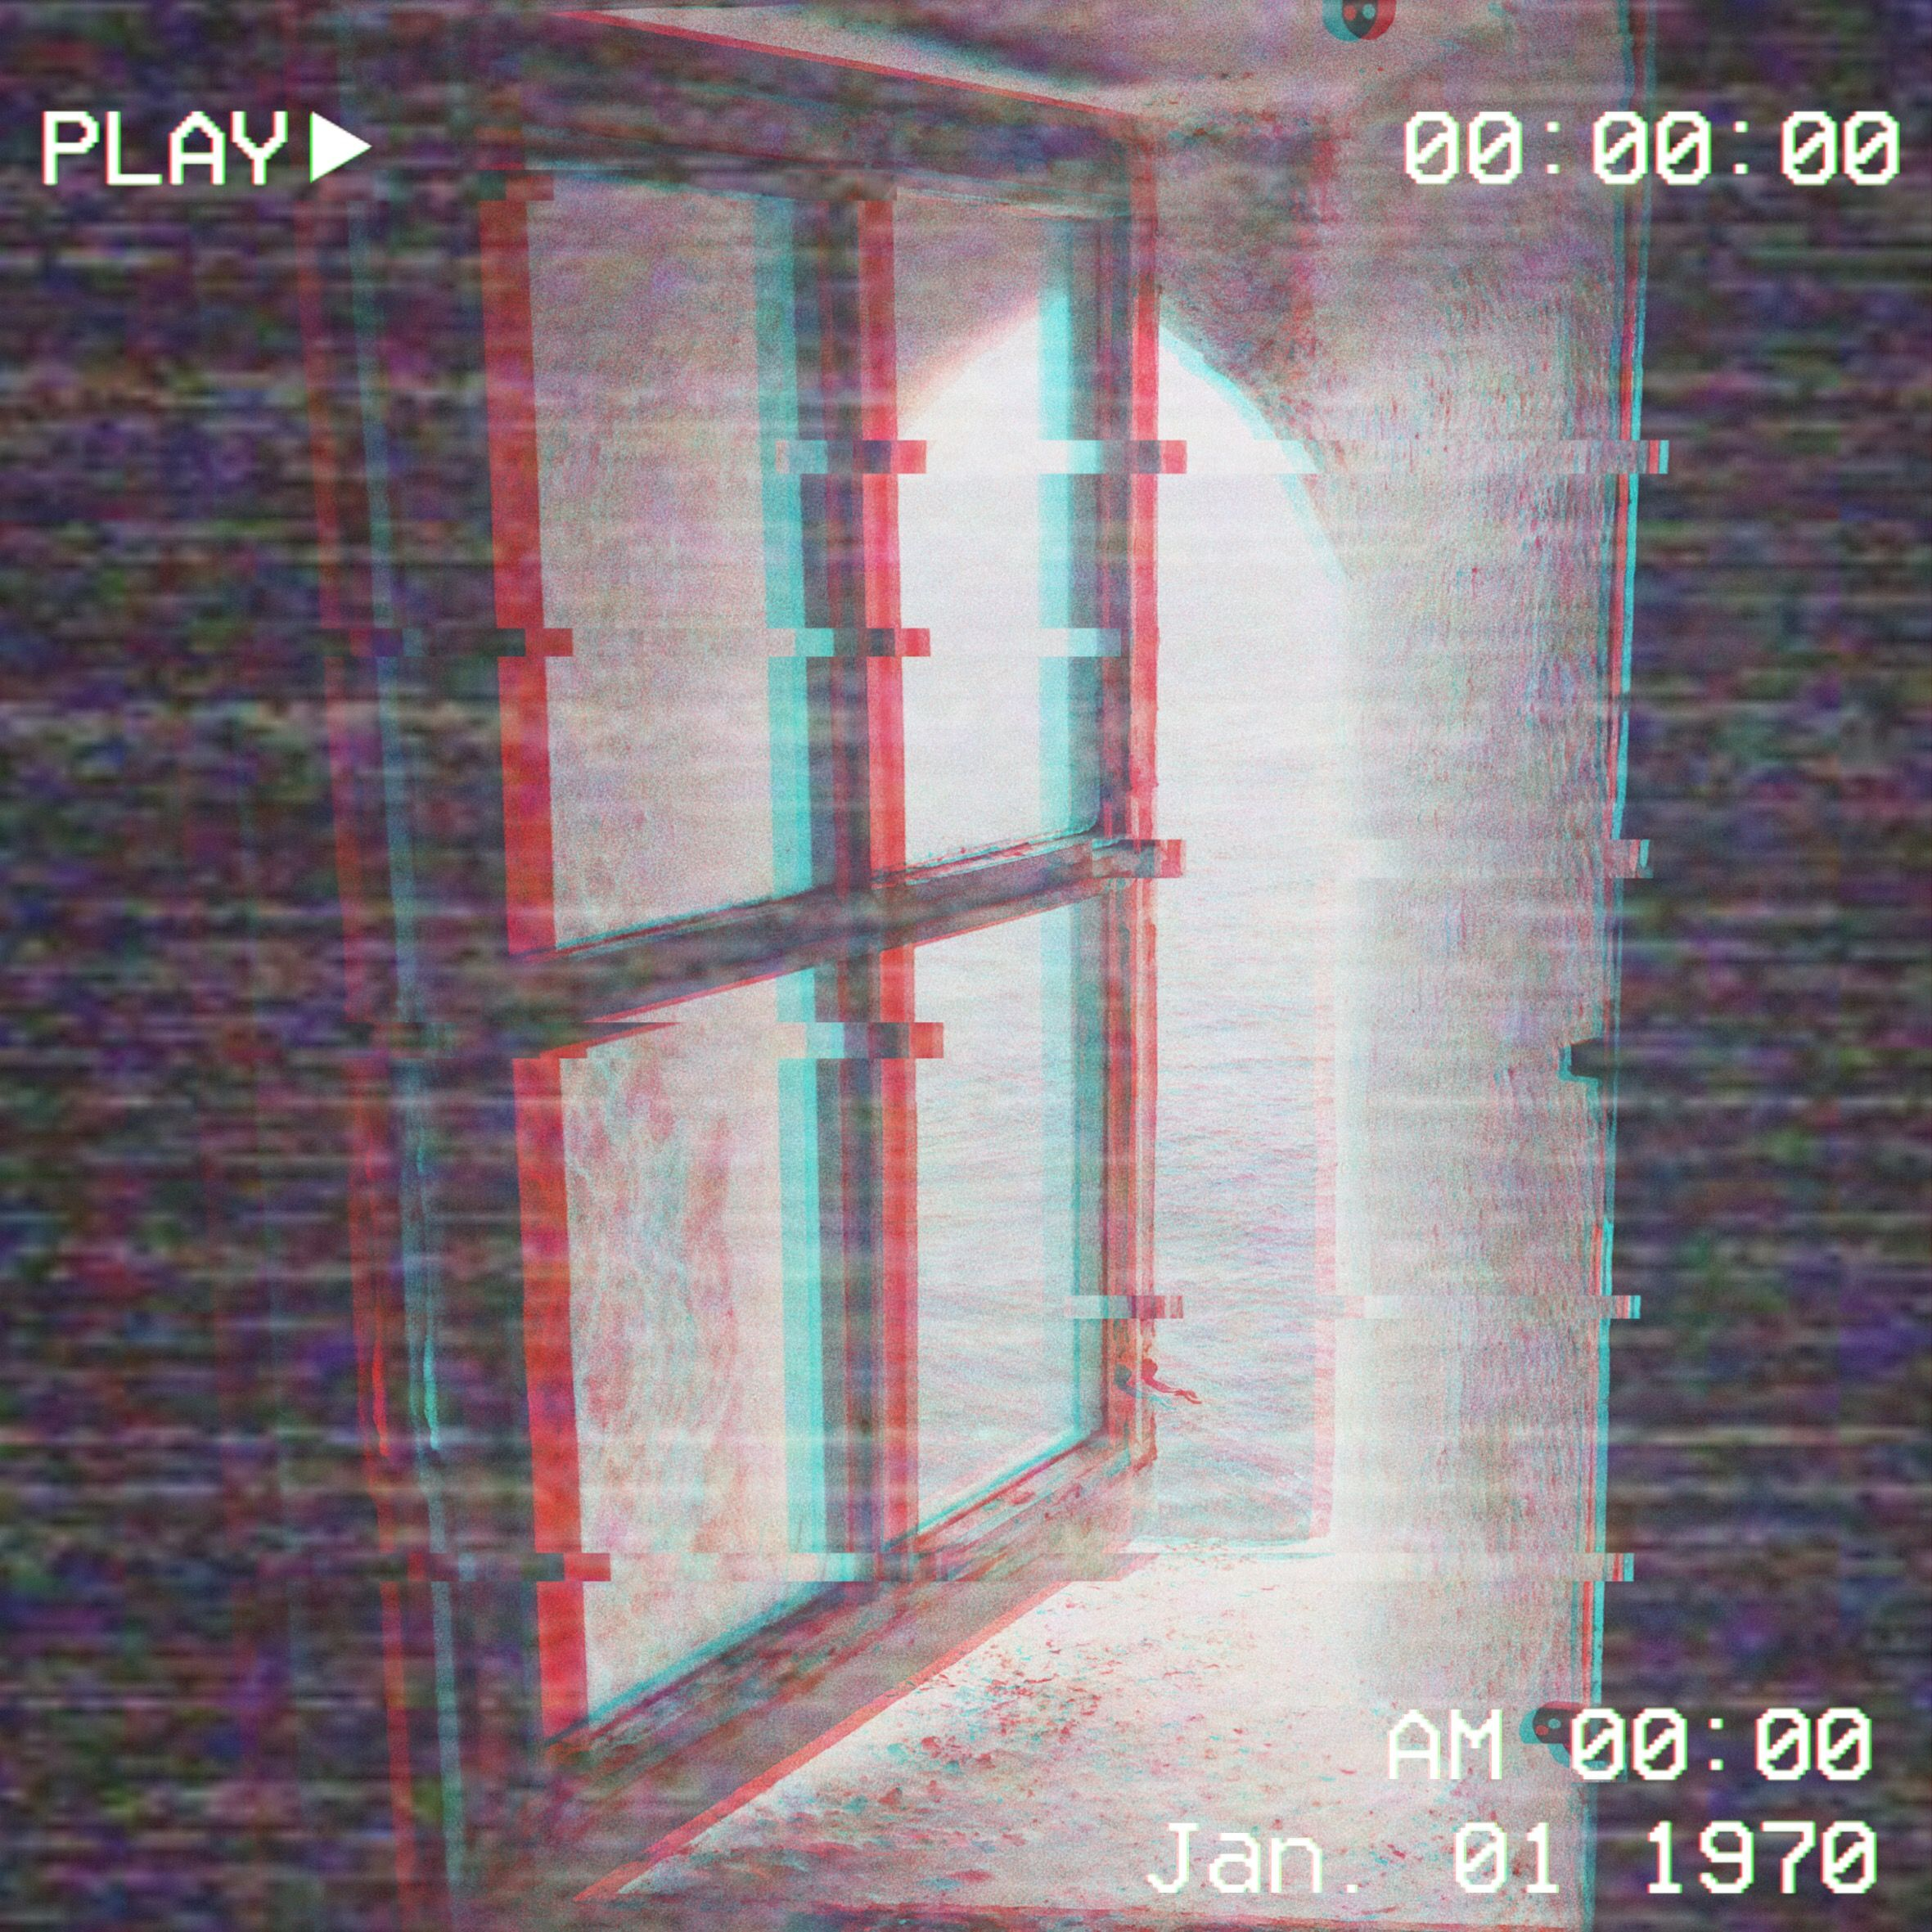 Edit Aesthetic Vhs Glitch Distorted Static Window Lighthouse Sea Black White Wexford Ireland Aesthetic Pictures Aesthetic Gif Glitch Art